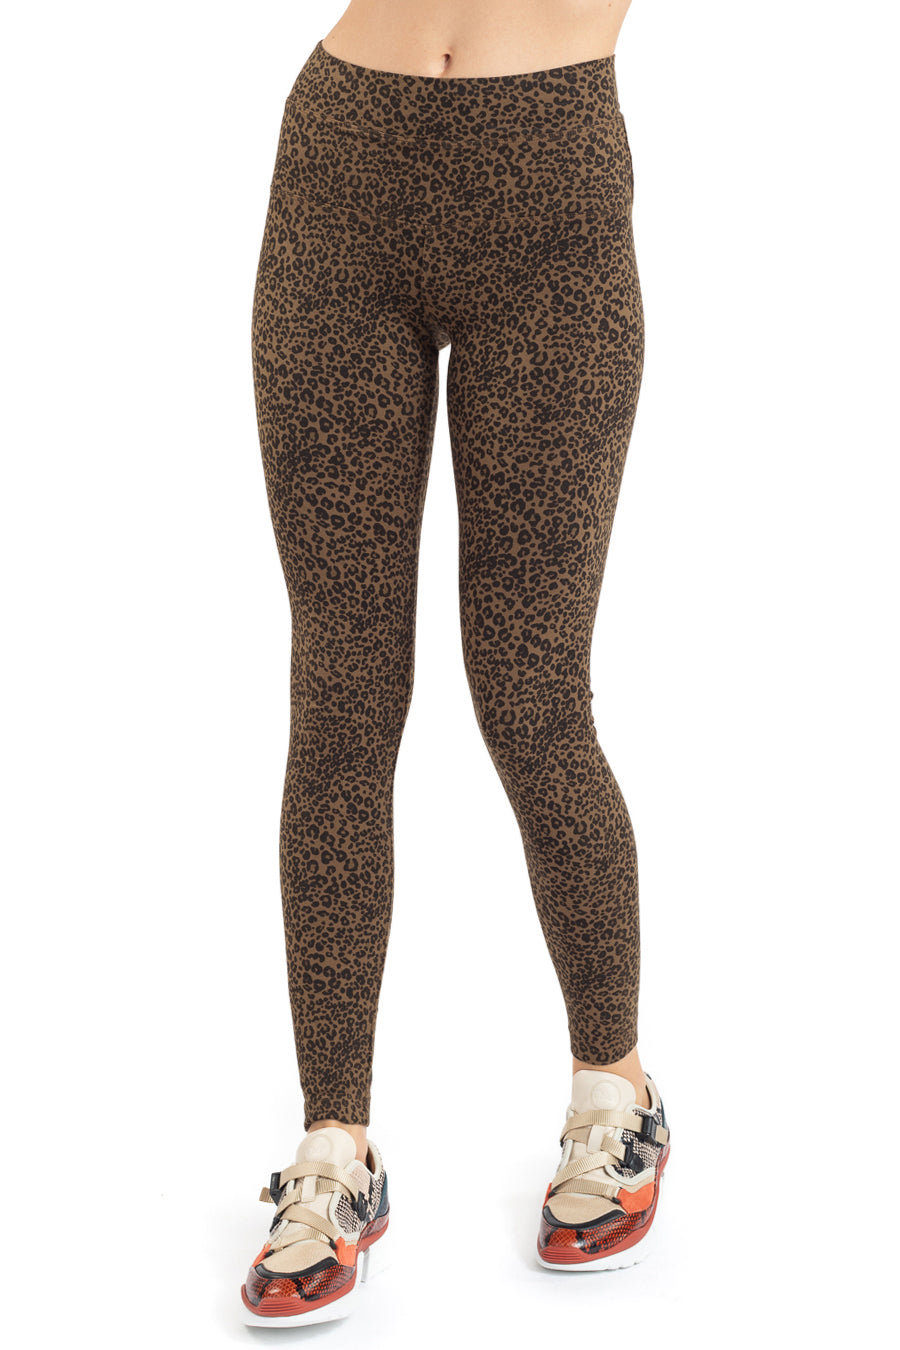 Hard Tail Forever Leopard High Rise Ankle Legging - Hickory - L